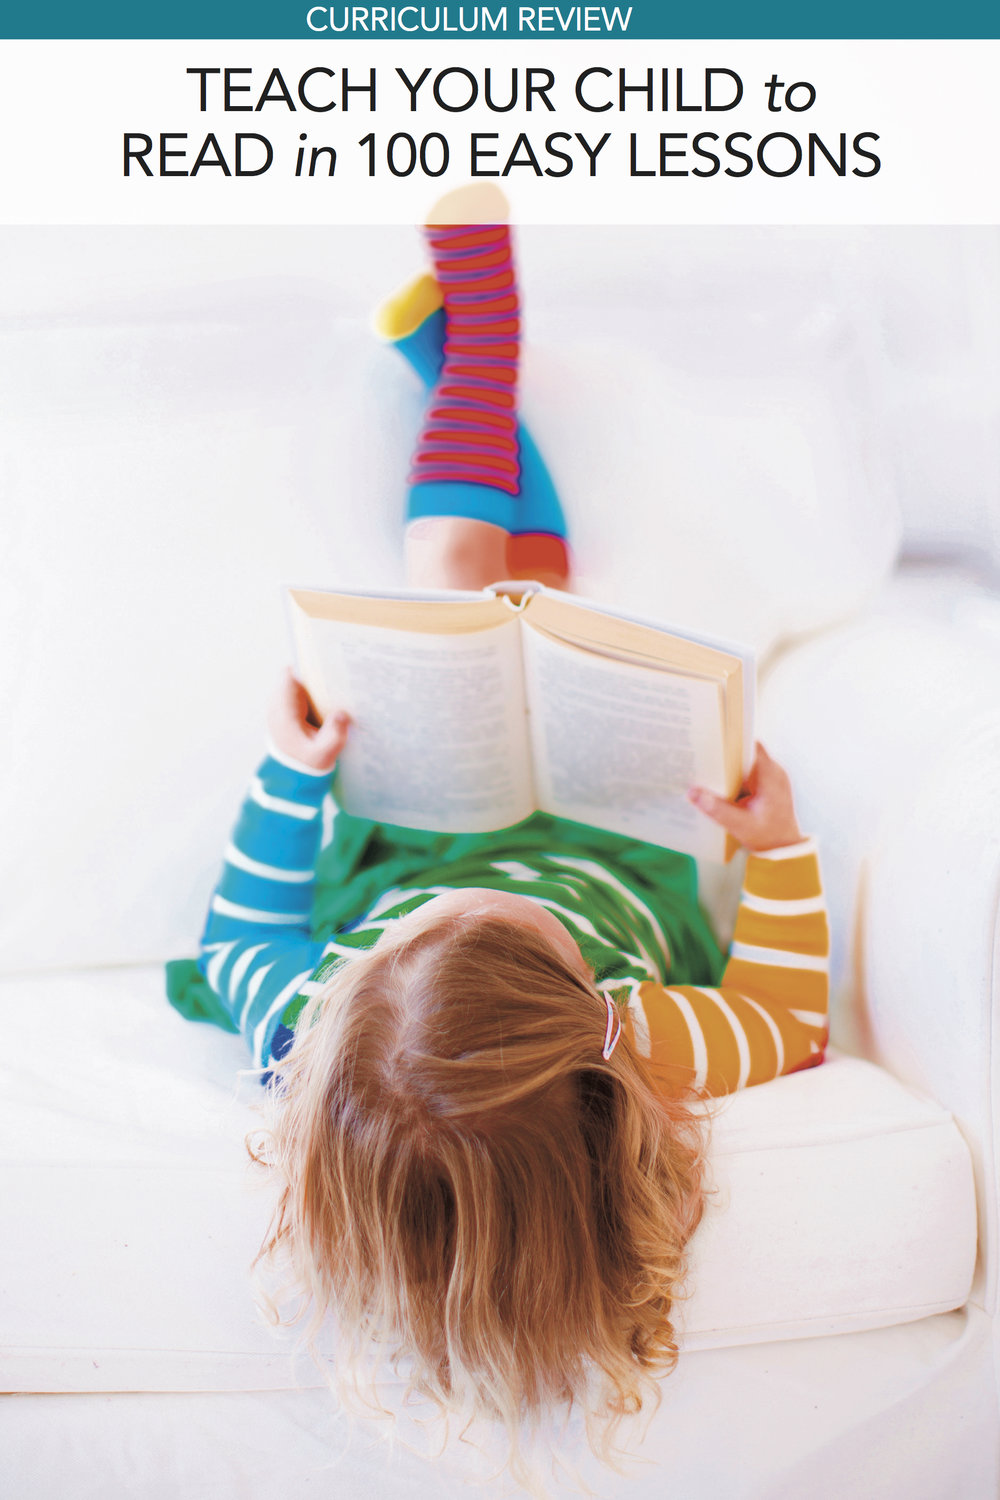 Curriculum Review: Teach Your Child to Read in 100 Easy Lessons